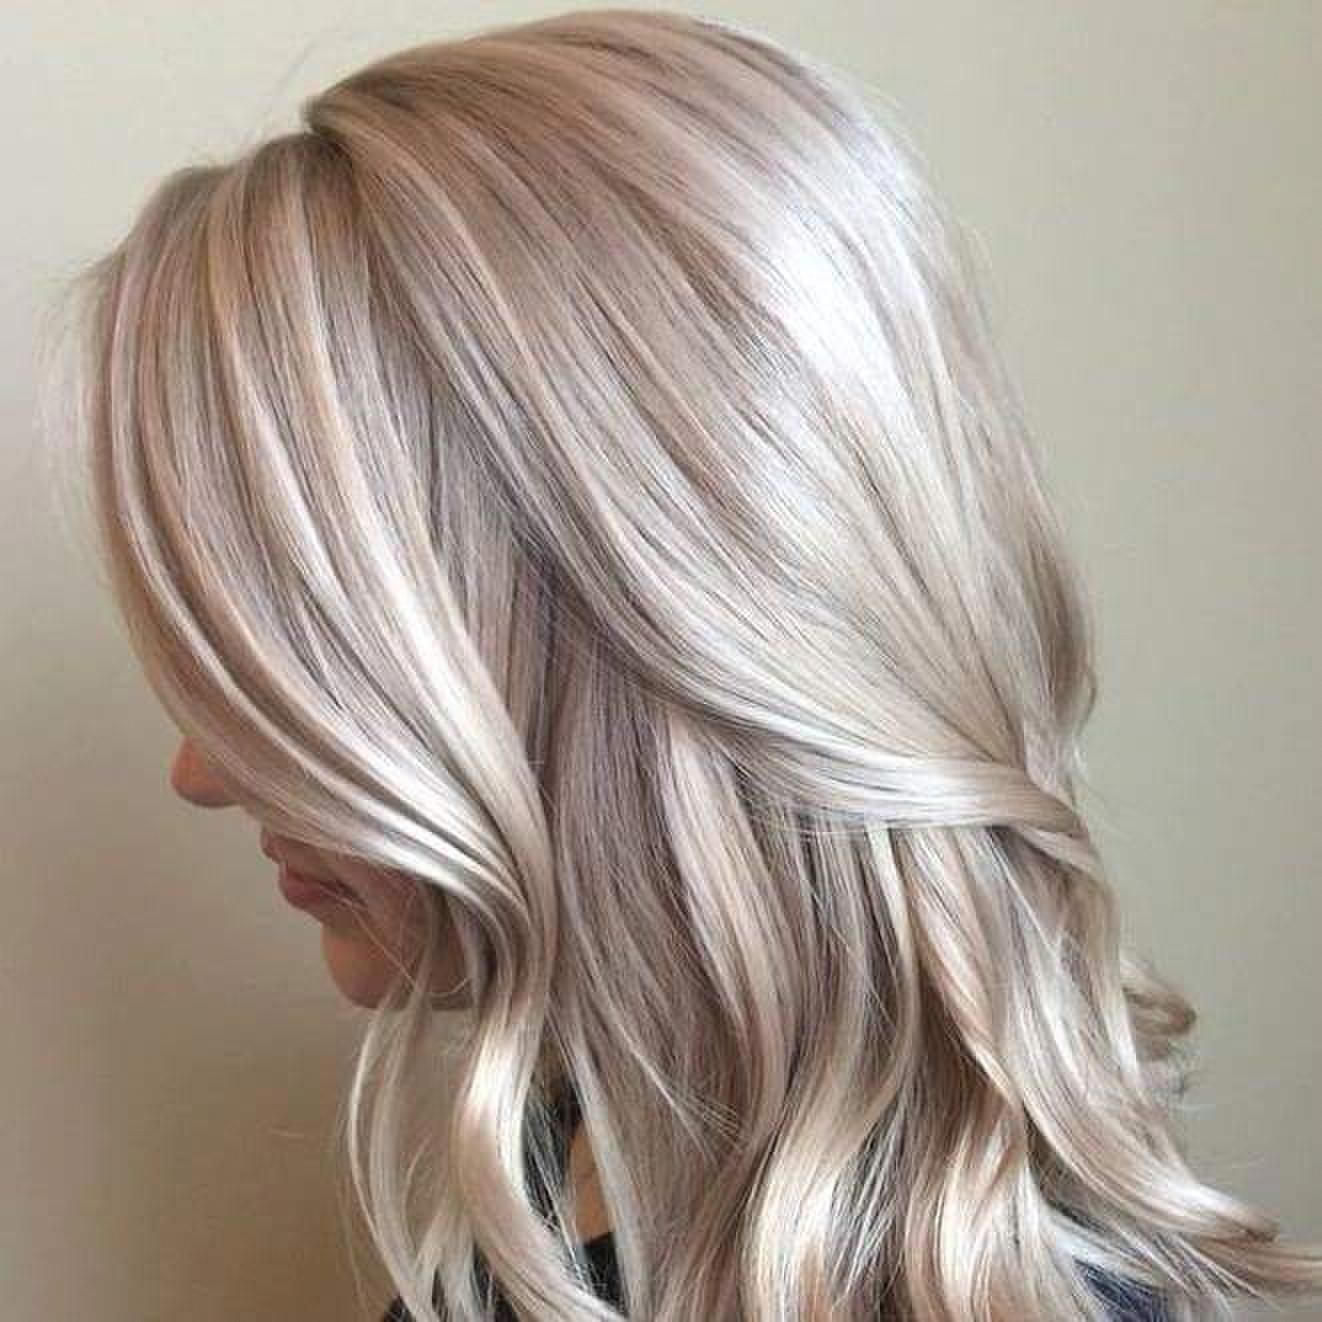 16 Bewitching Long Brown Hairstyles And Haircuts In 2020 Long